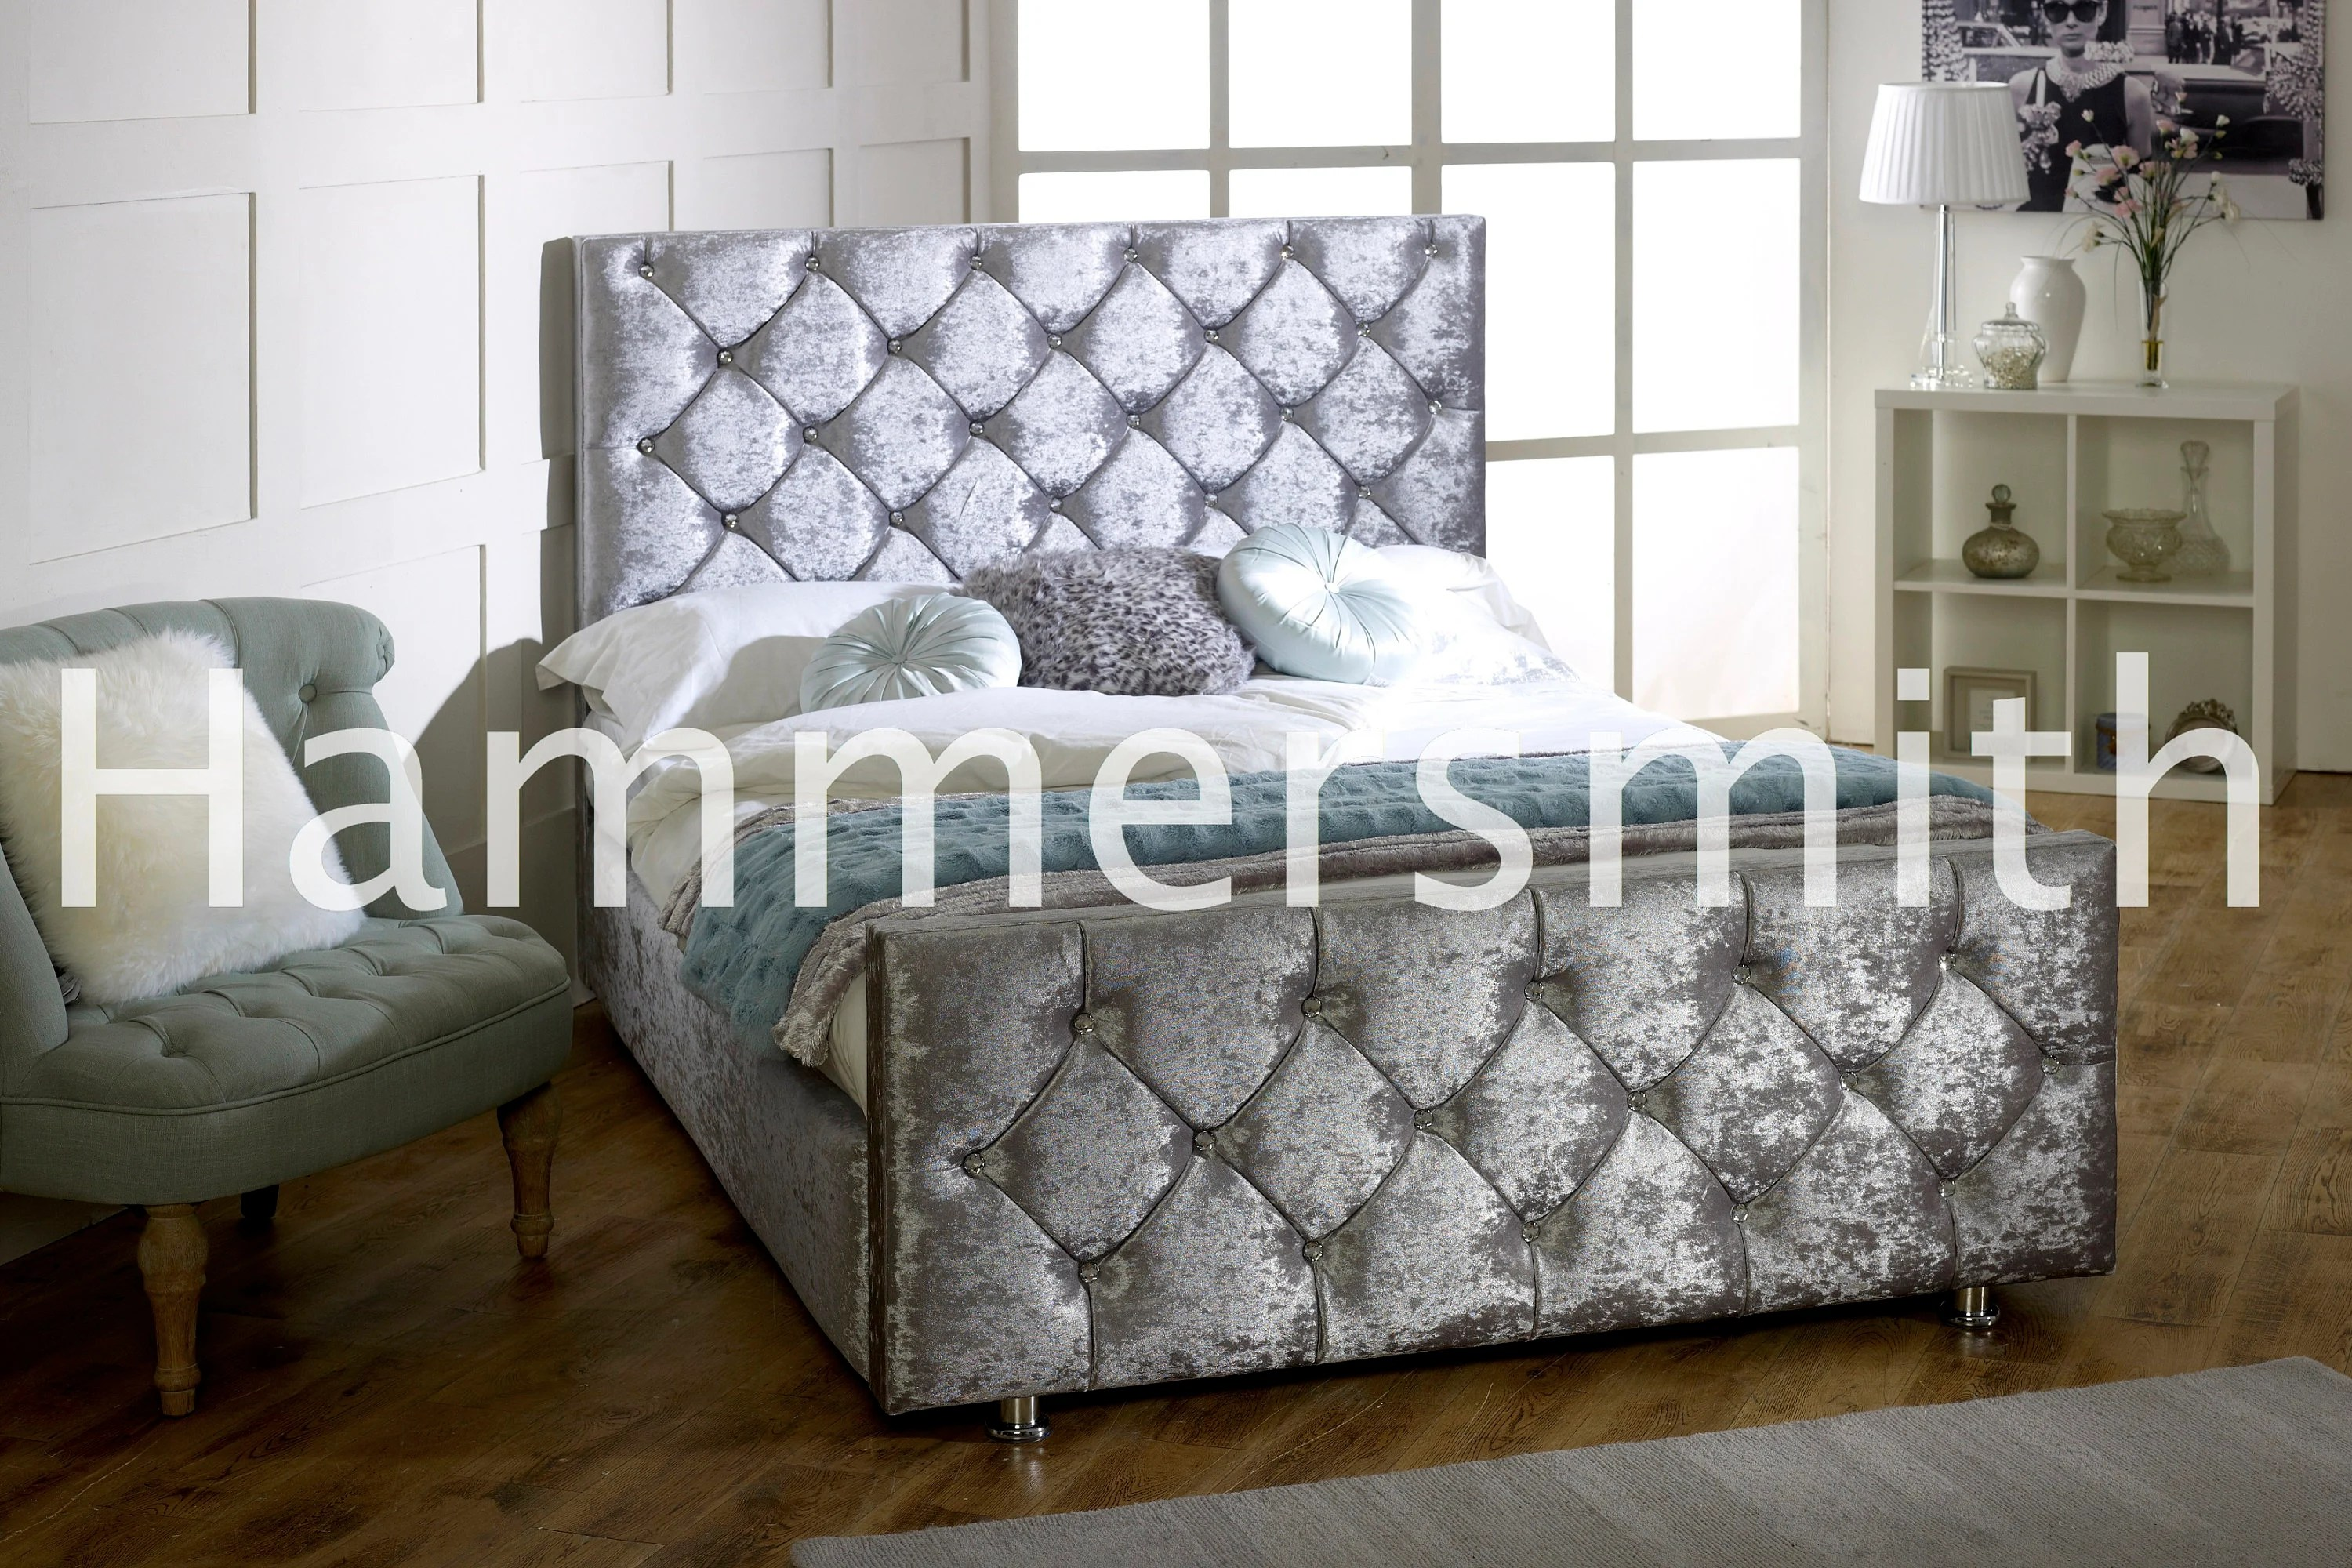 Crushed Velvet Bed Ebay Brand New Uk Handmade Diamond Crushed Velvet Bed Frame 3ft 4ft 4ft6 5ft